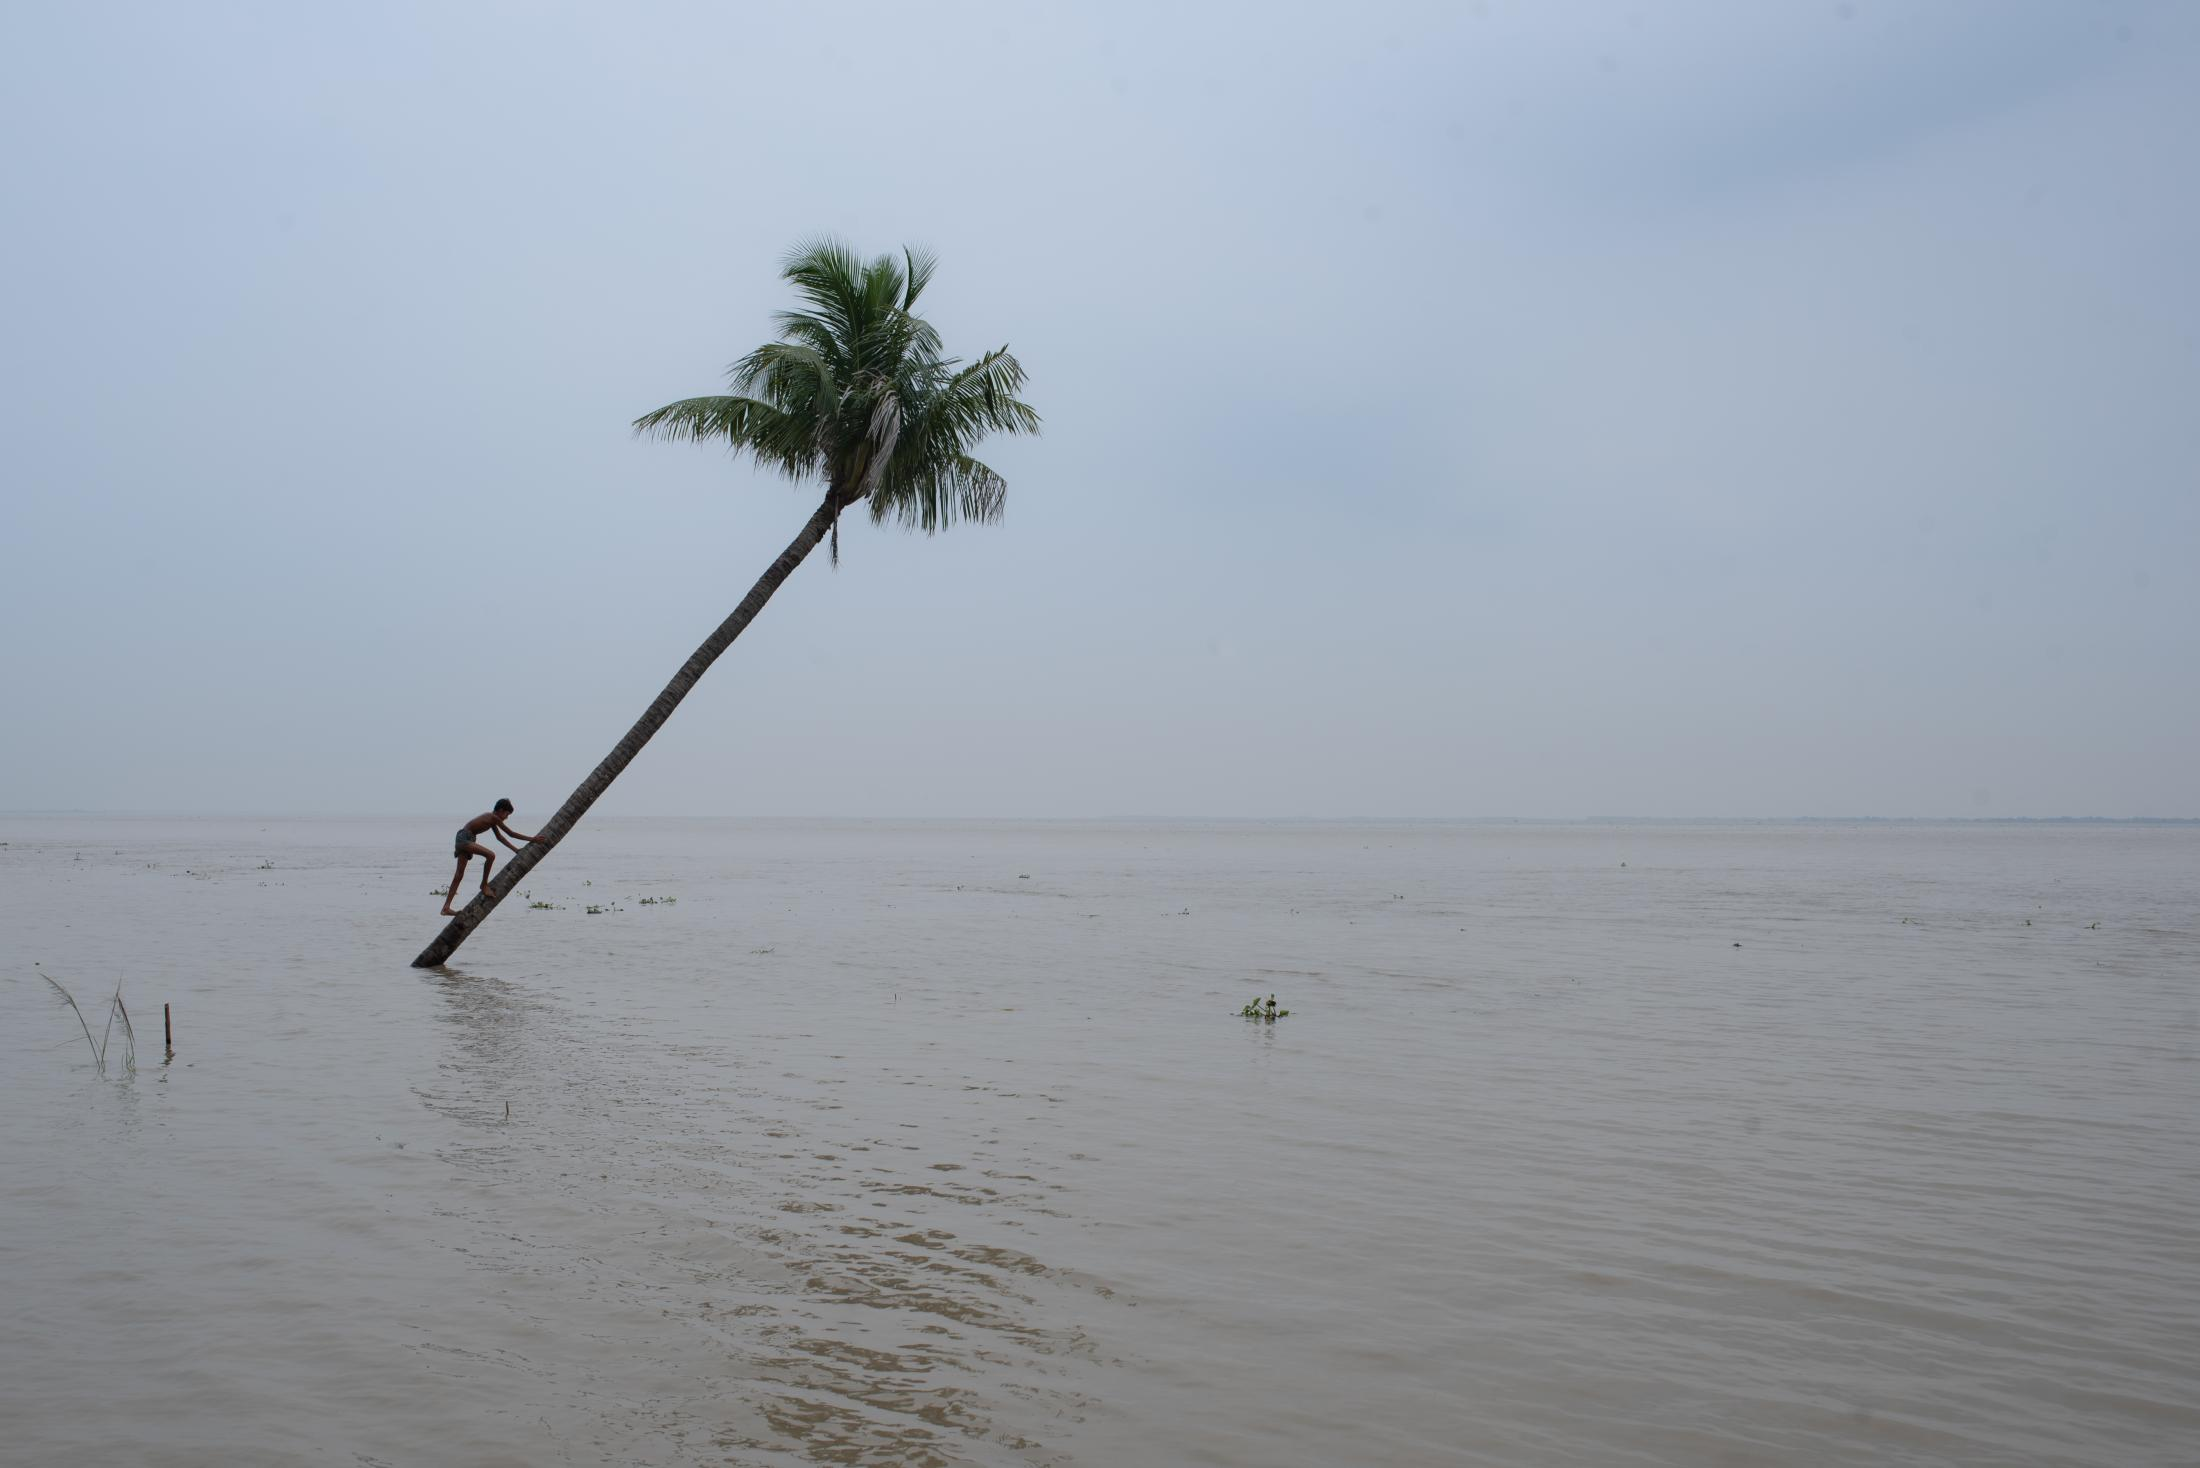 A boy climbs a tree that has fallen due to the flooding of the Padma river in Bangladesh.